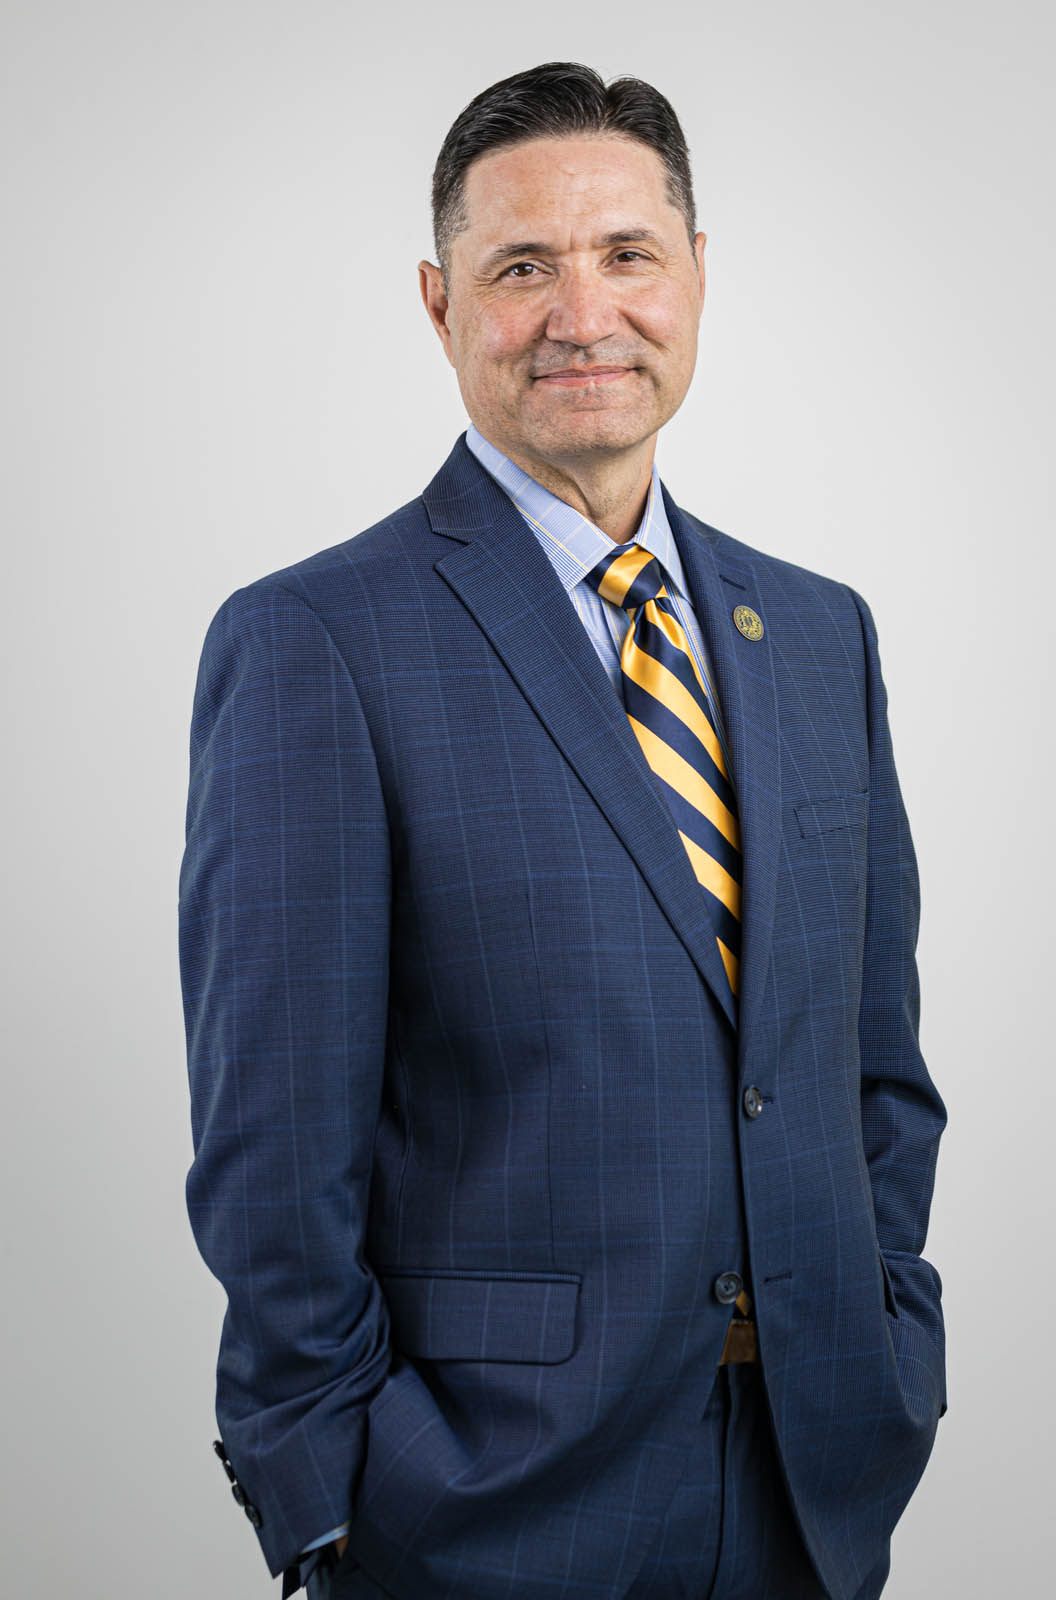 Interim Chancellor Nathan Brostrom of UC Merced